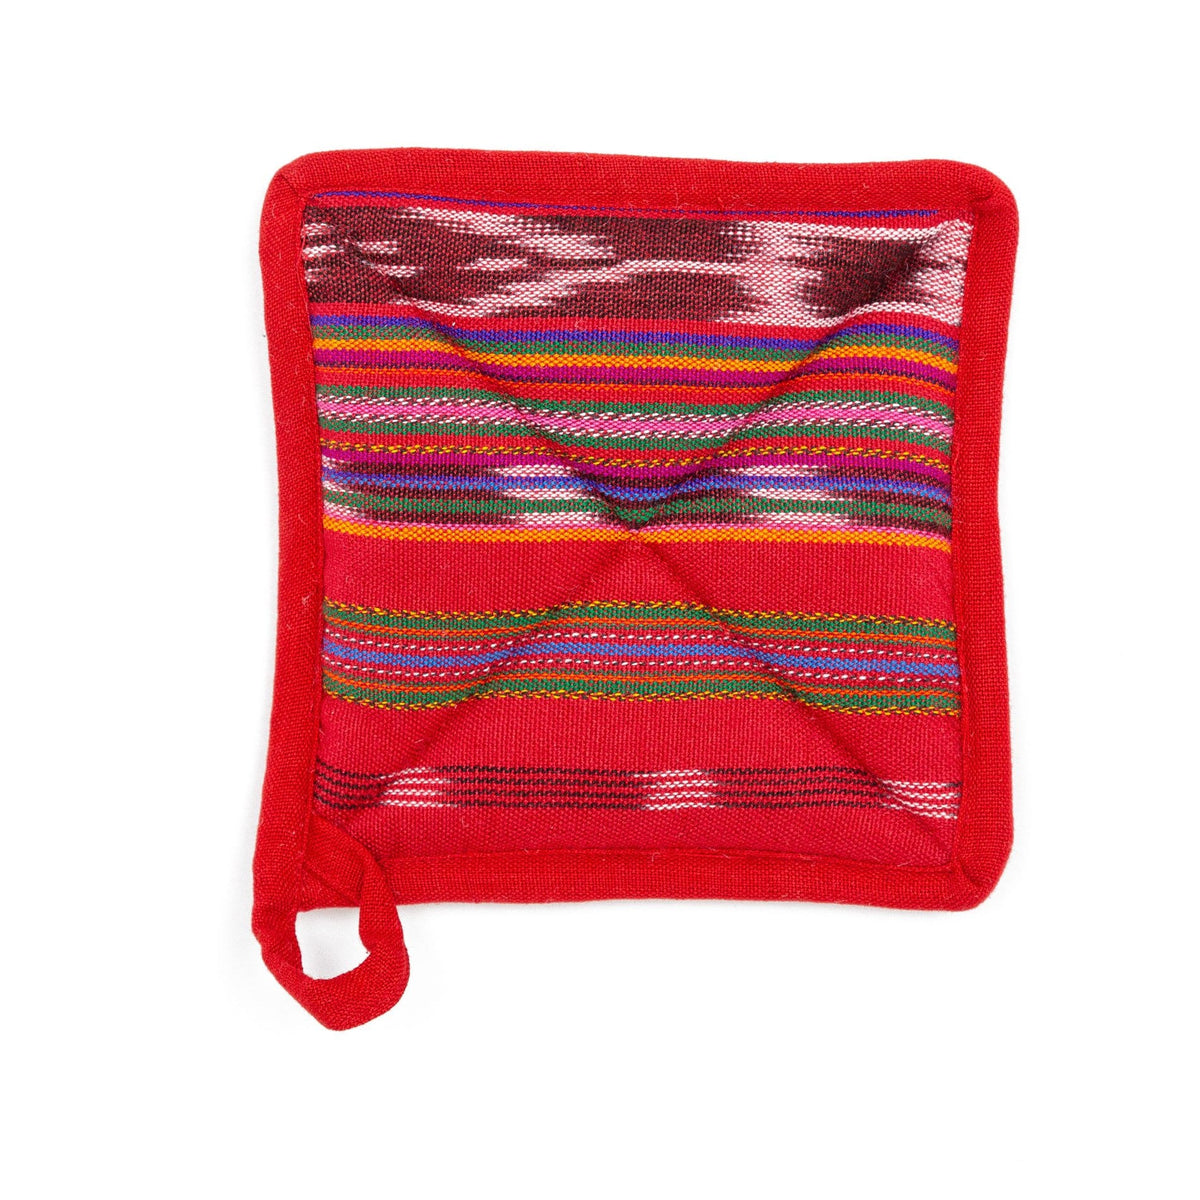 Fair Trade Handmade Pot Holder Festive Red